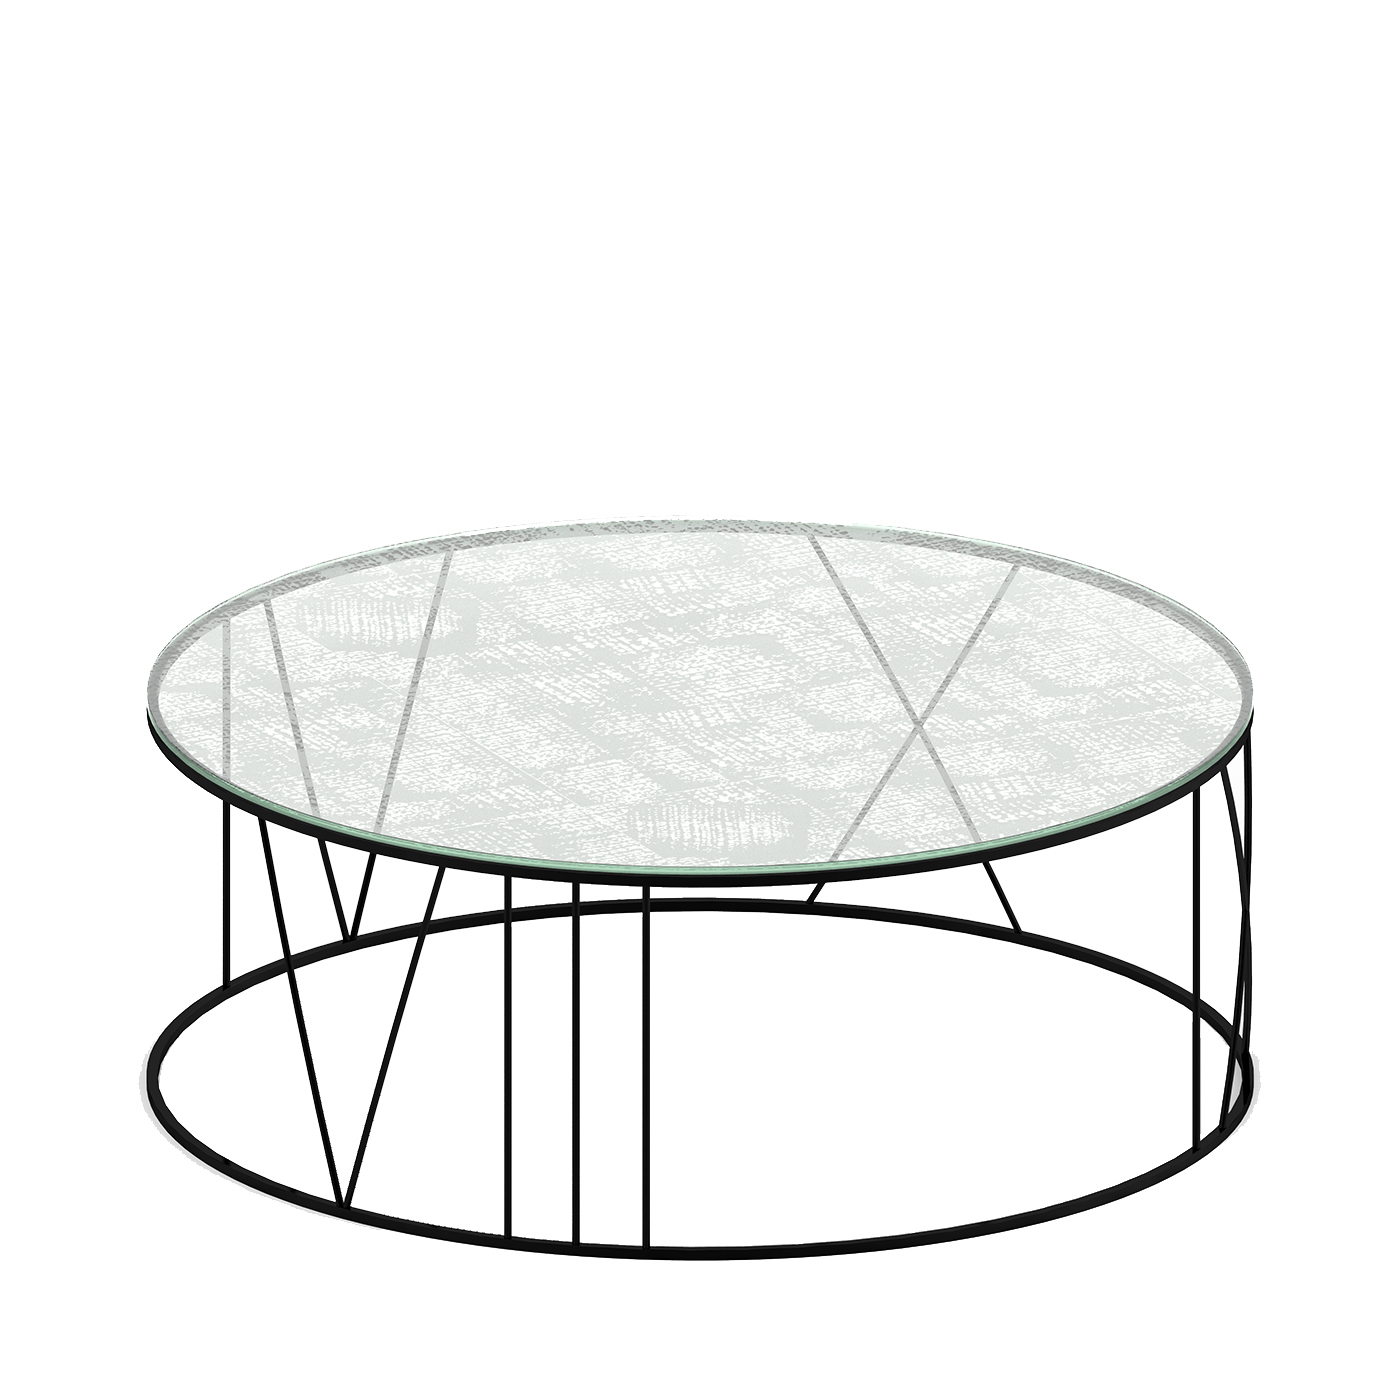 Glass Coffee Tables For Clean Interior Design interior design Glass Coffee Tables For Clean Interior Design ZEUSMI 03820171025 17950 exm4yv